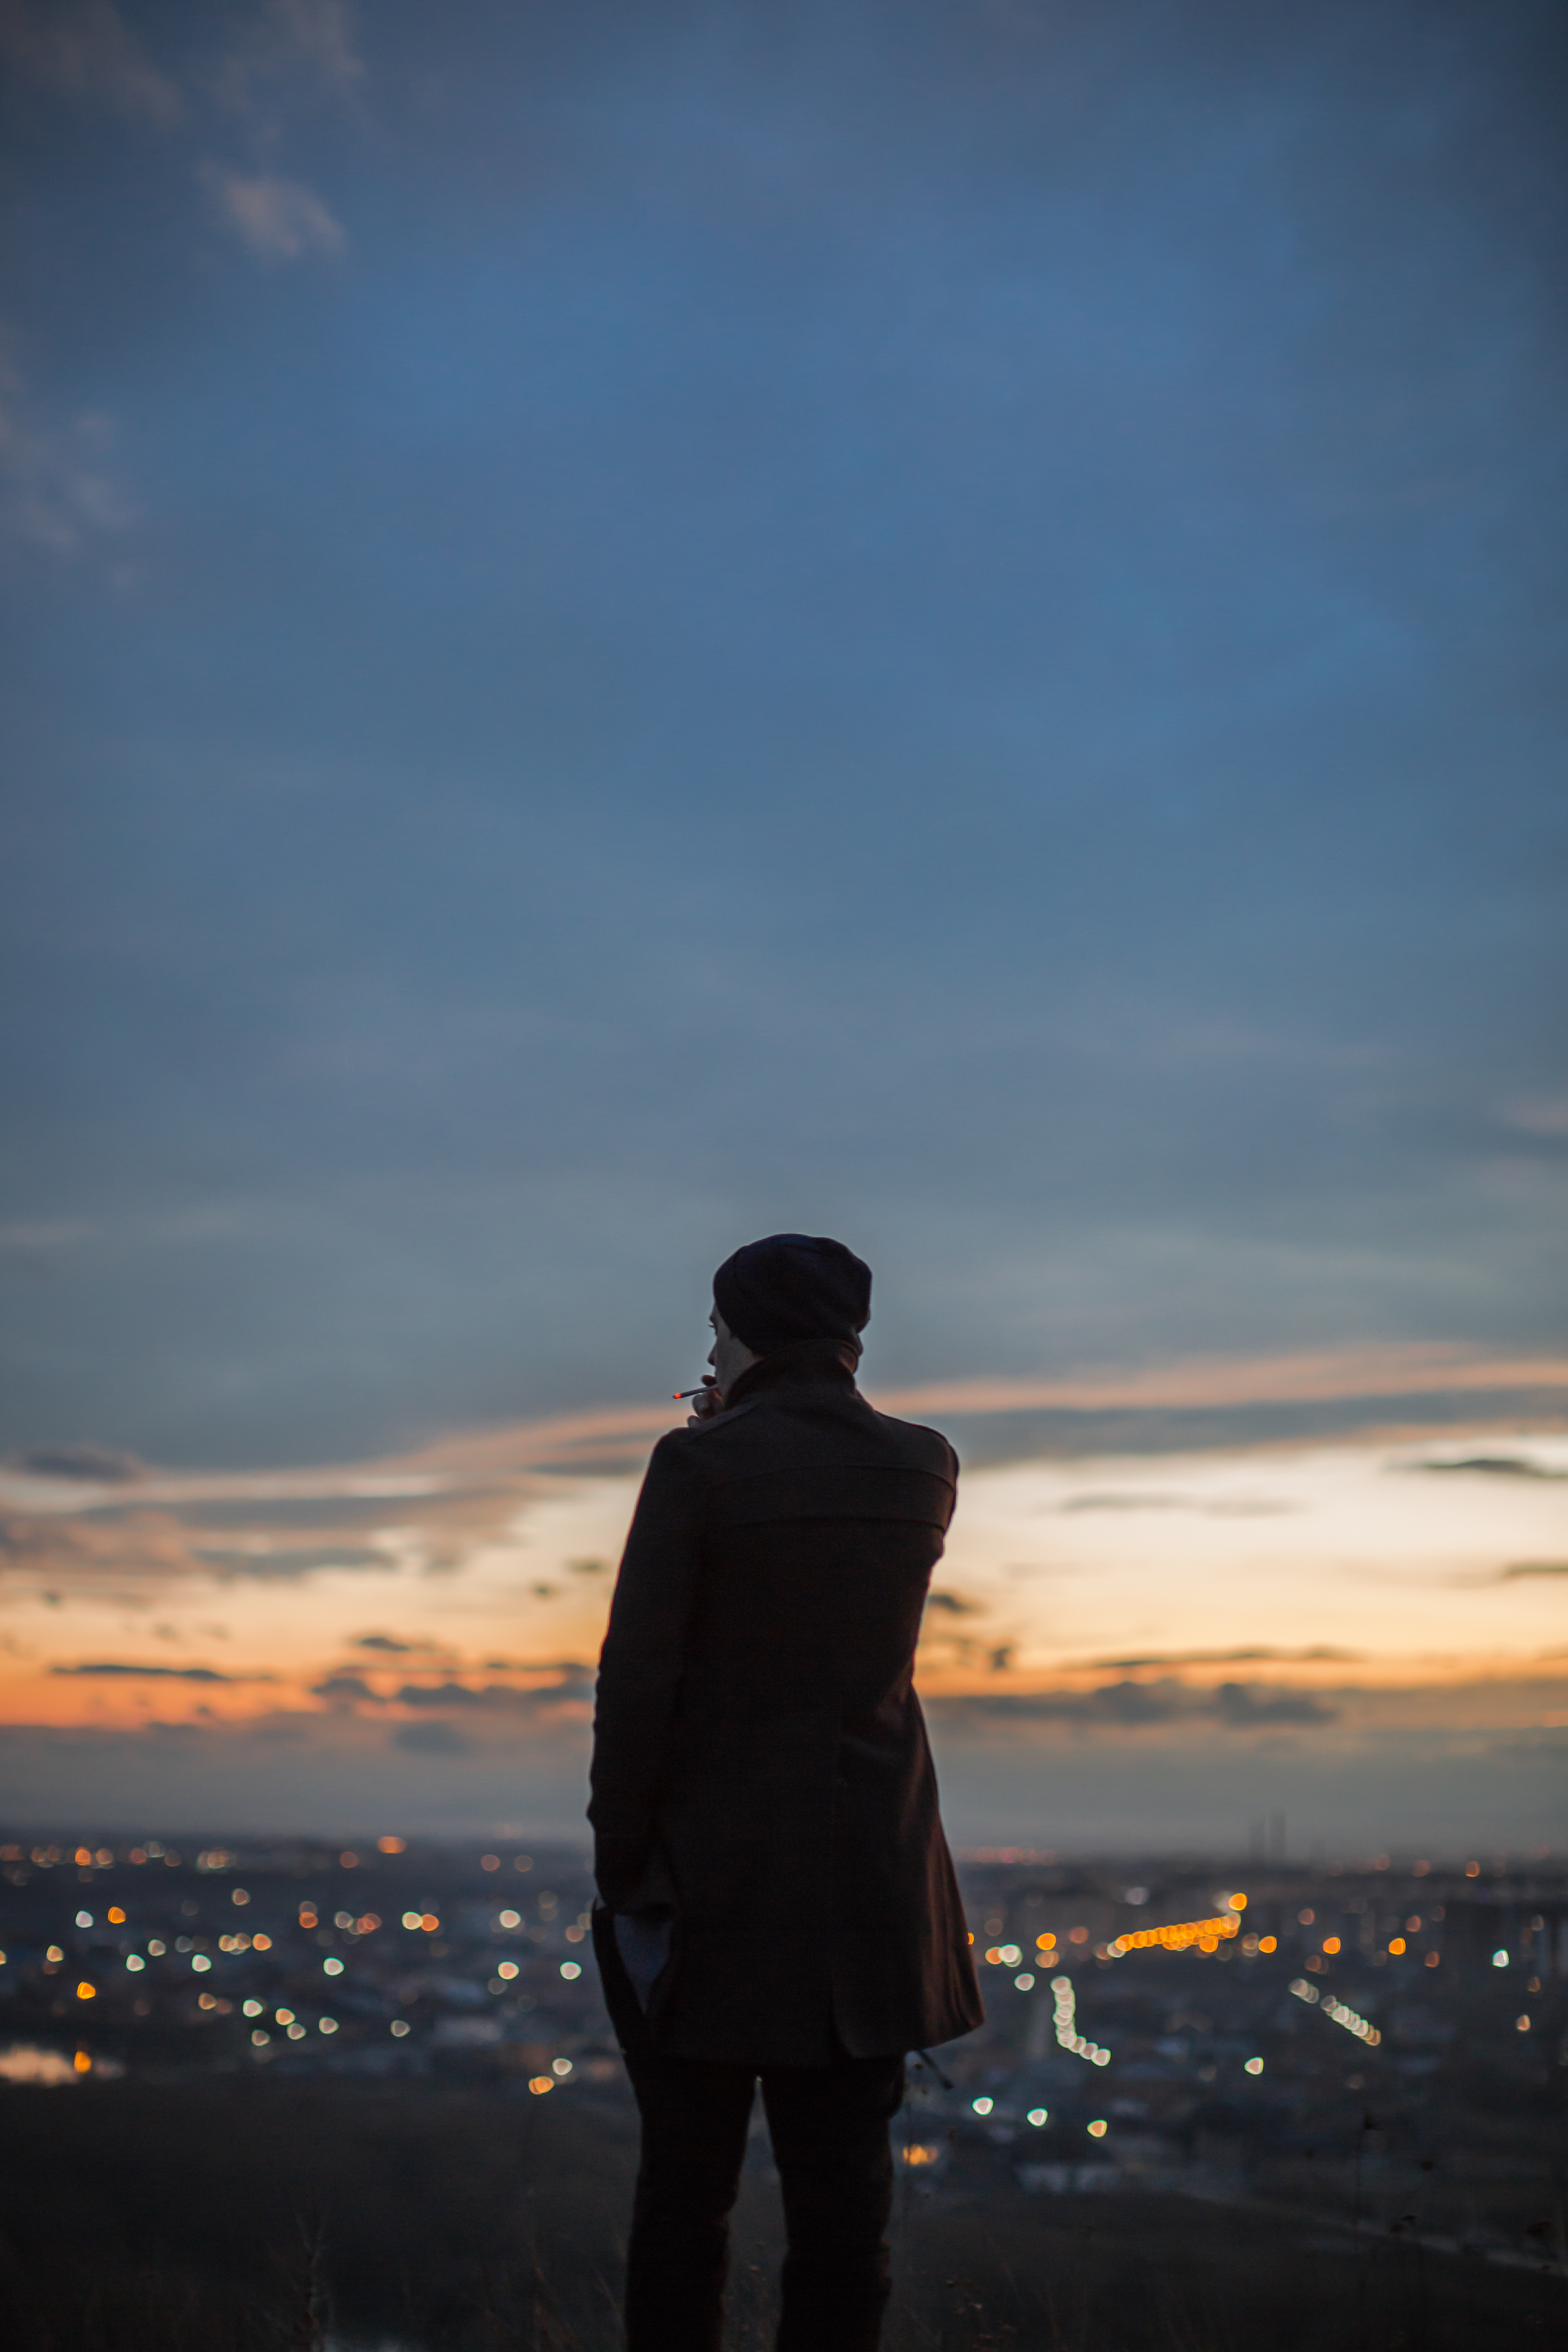 Man watching sunset from the hill example image 1